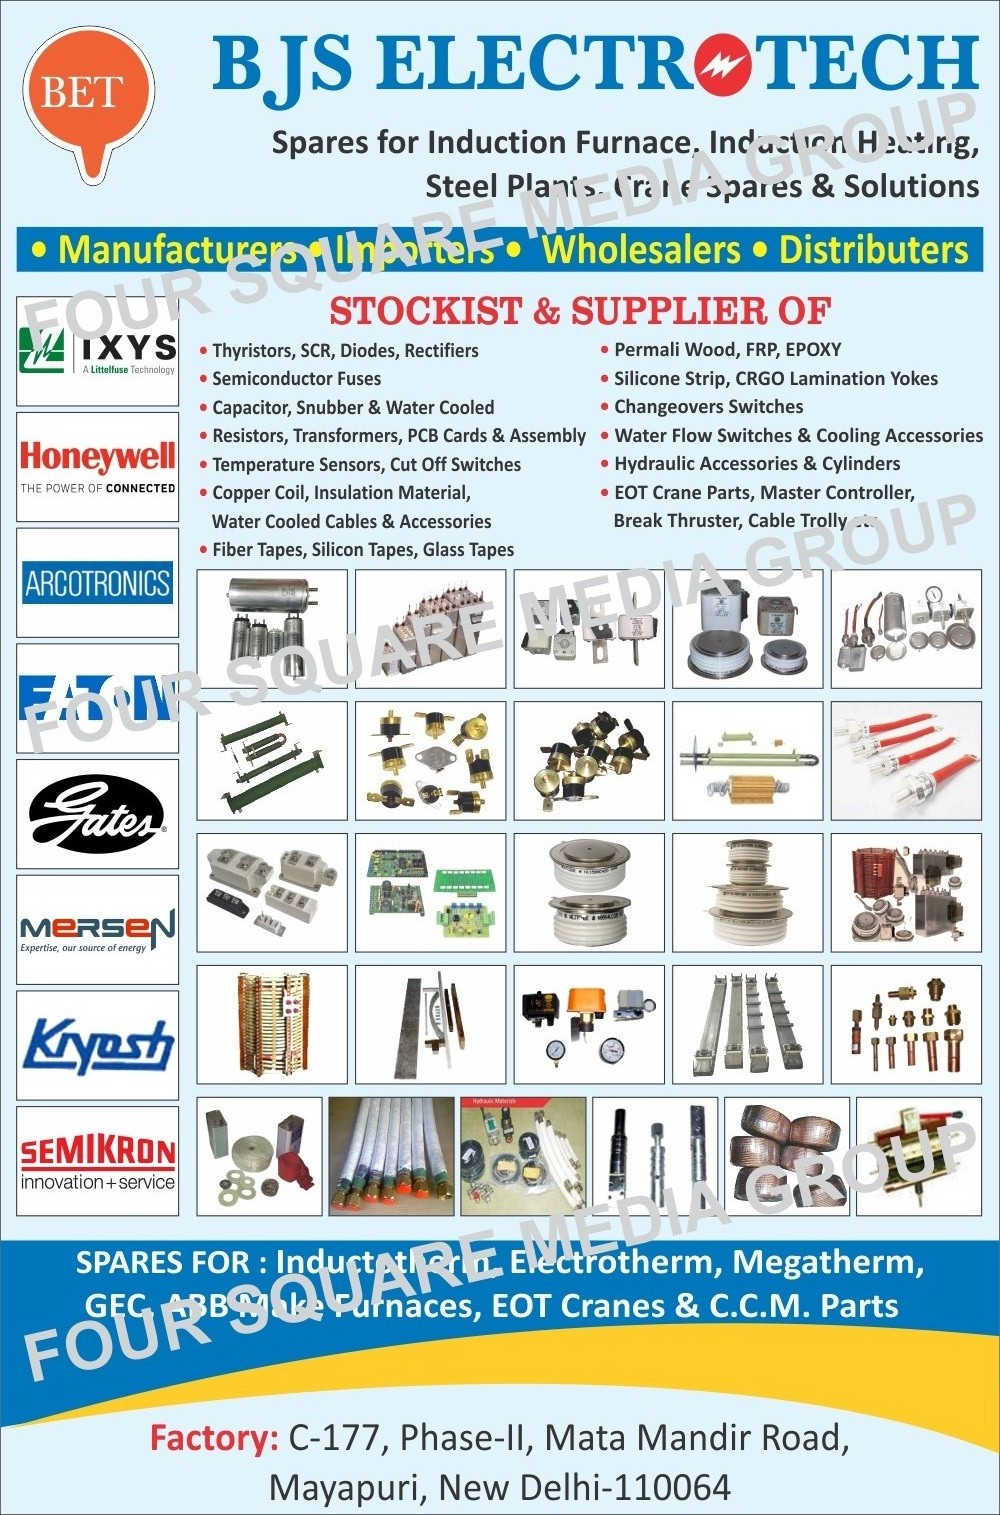 CCM Spare Parts, Cone Cast Machine Spare Parts, Inductotherm Furnace Spare Parts, Electrotherm Furnace Spare Parts, Megatherm Furnace Spare Parts, EOT Crane Spare Parts, Induction Furnace Spare Parts, Induction Heating Spare Parts